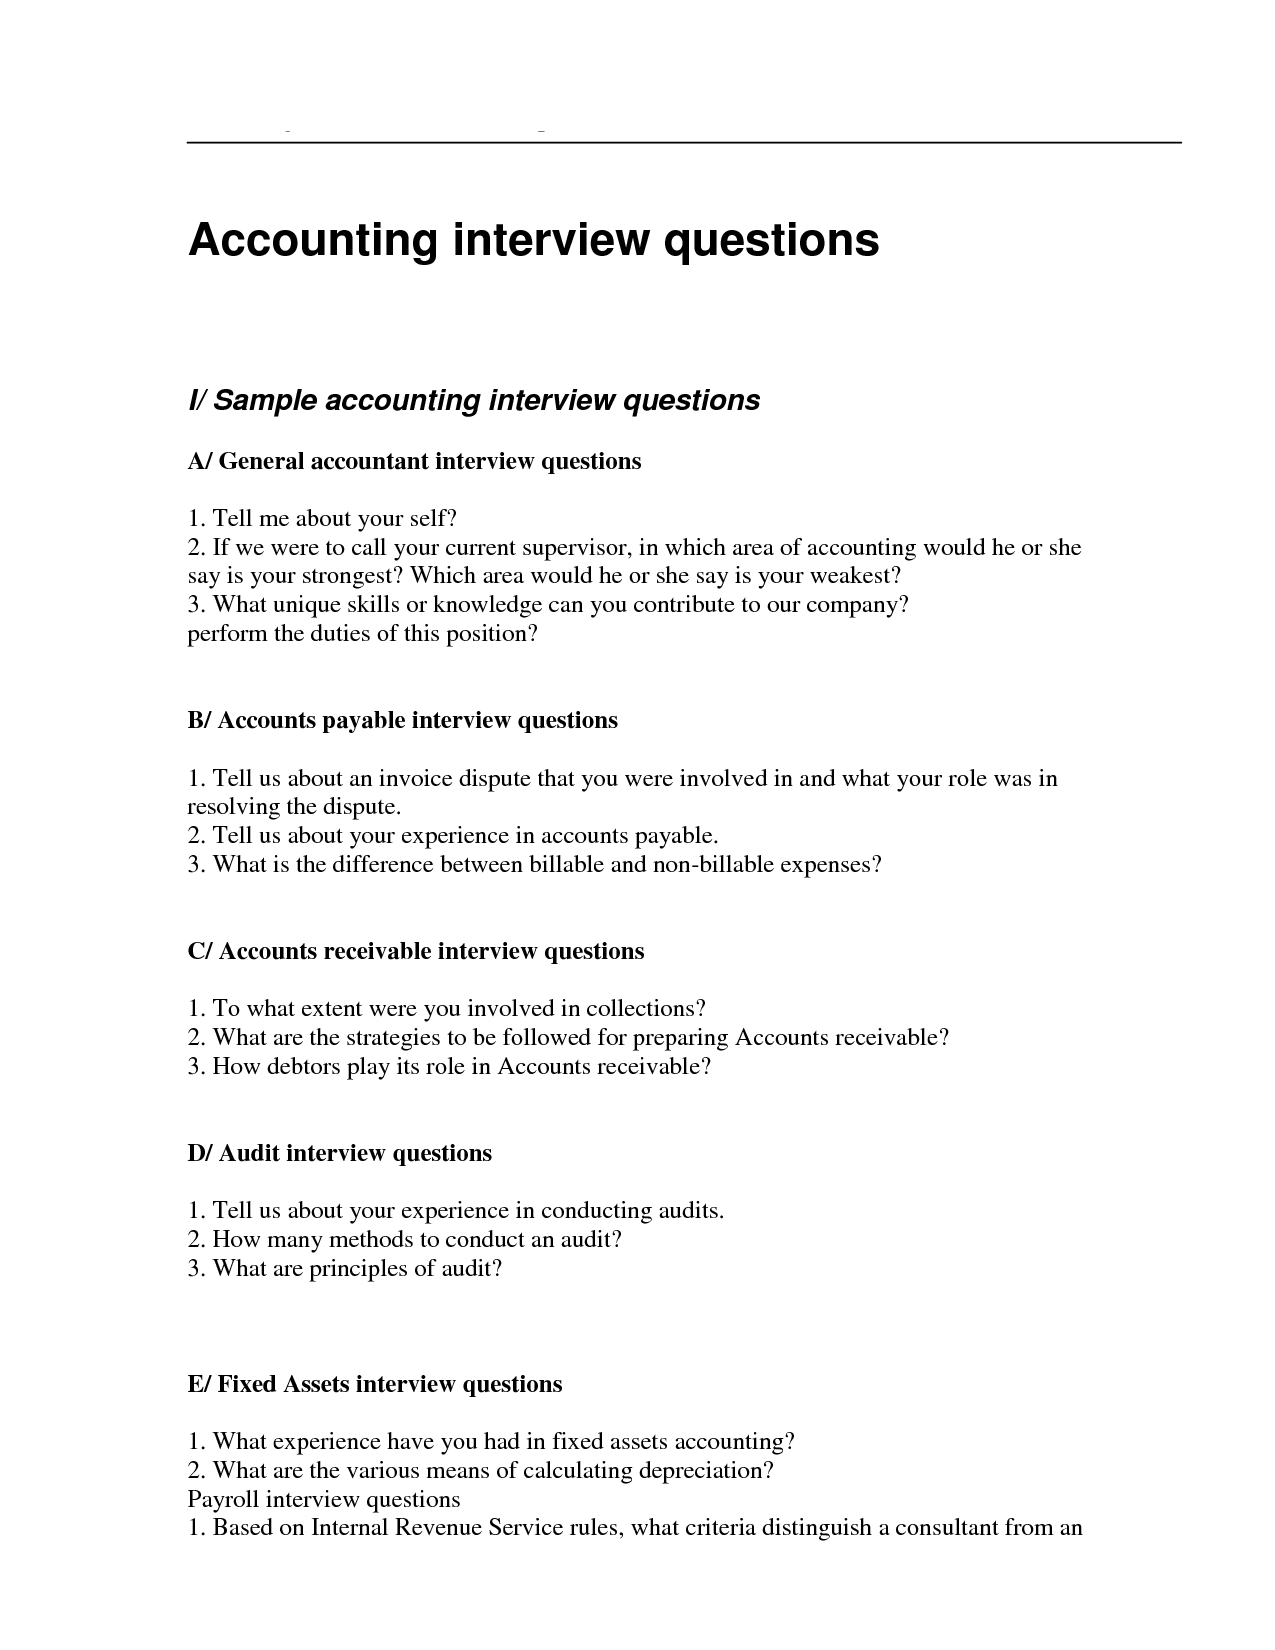 Accountant Interview Questionnaire Sample An Accountant